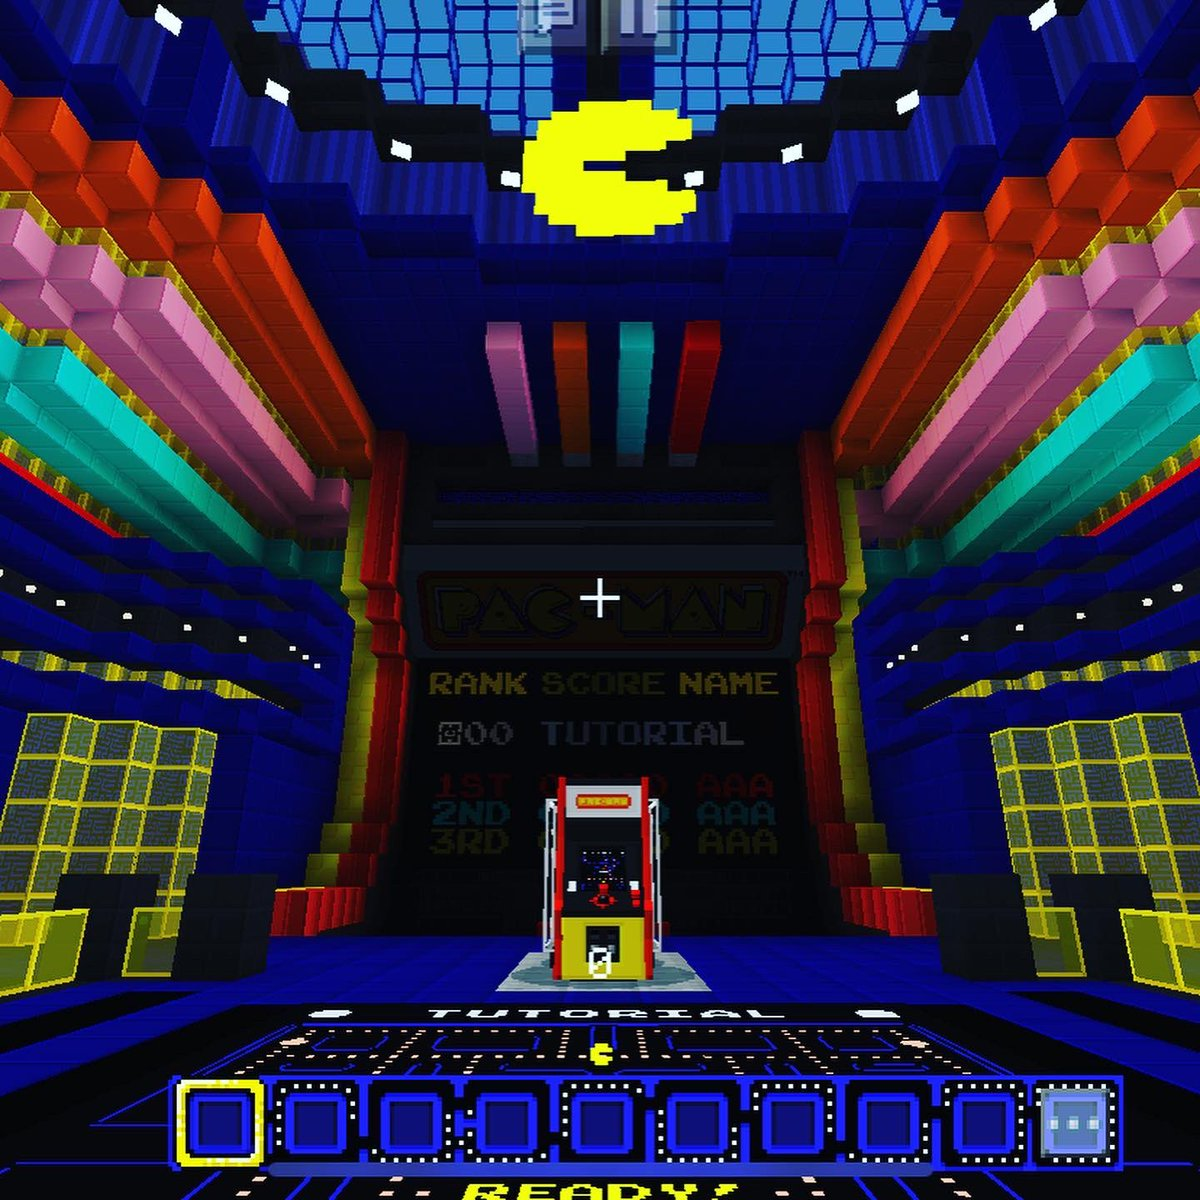 In celebration of its 40th anniversary, Pac-Man comes to Minecraft with new DLC. Run the classic maxes in first person or build your own. Solo or with friends. (Can I say how much better I like Pac-Man in Minecraft?)  check it out! #pacman #minecraft #minecraftdlcpic.twitter.com/EwMg31s0Sn